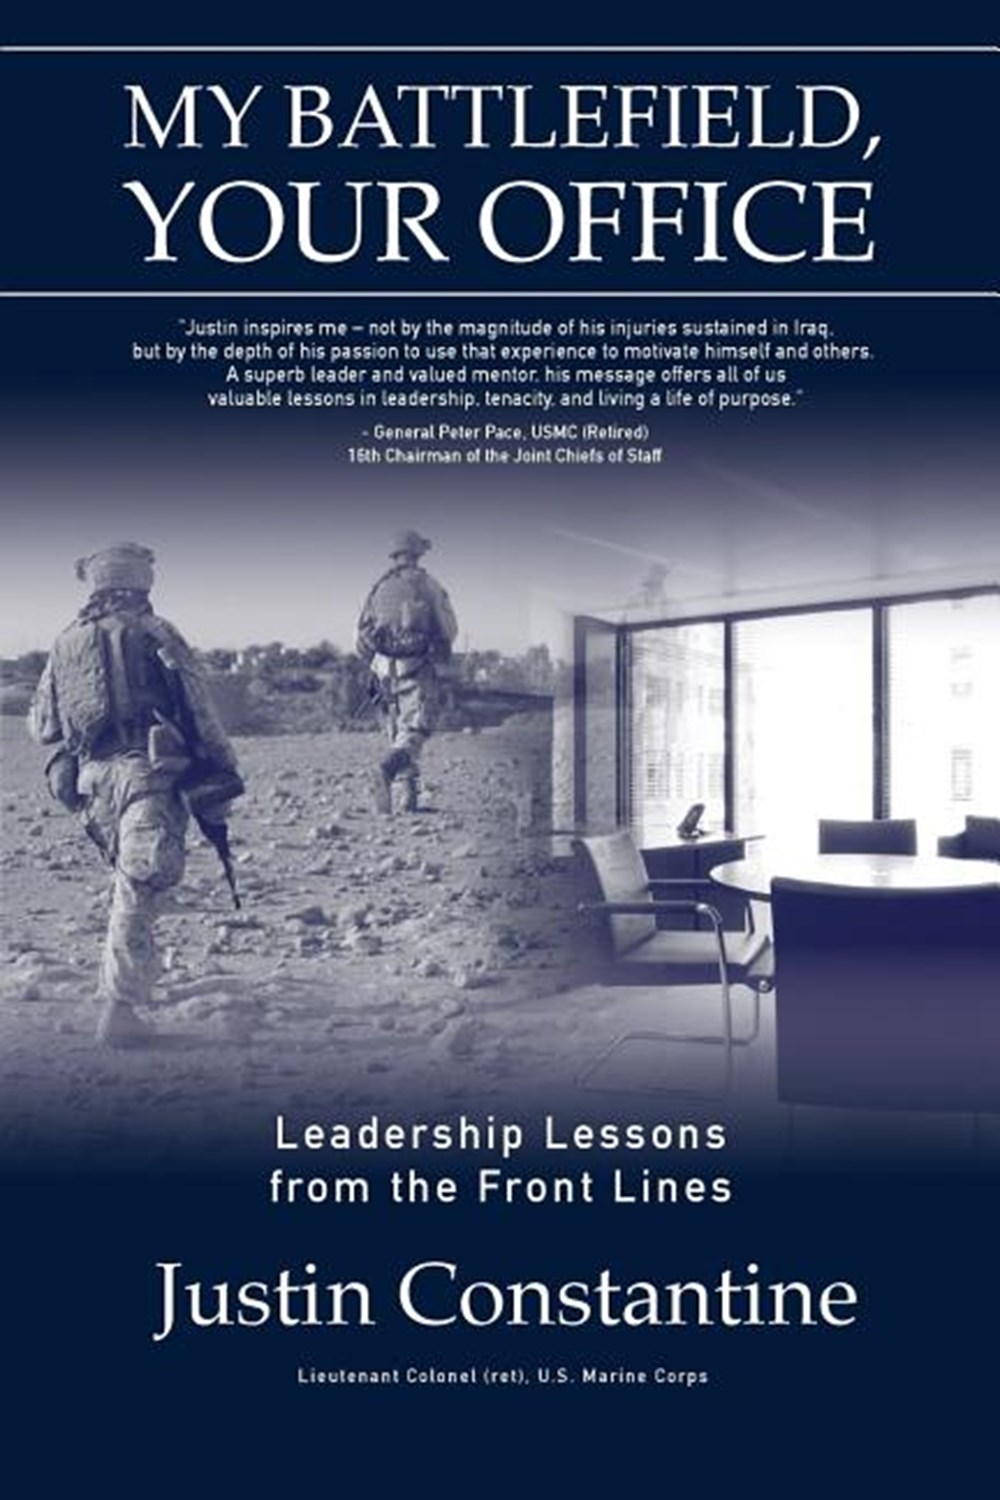 My Battlefield, Your Office Leadership Lessons from the Front Lines